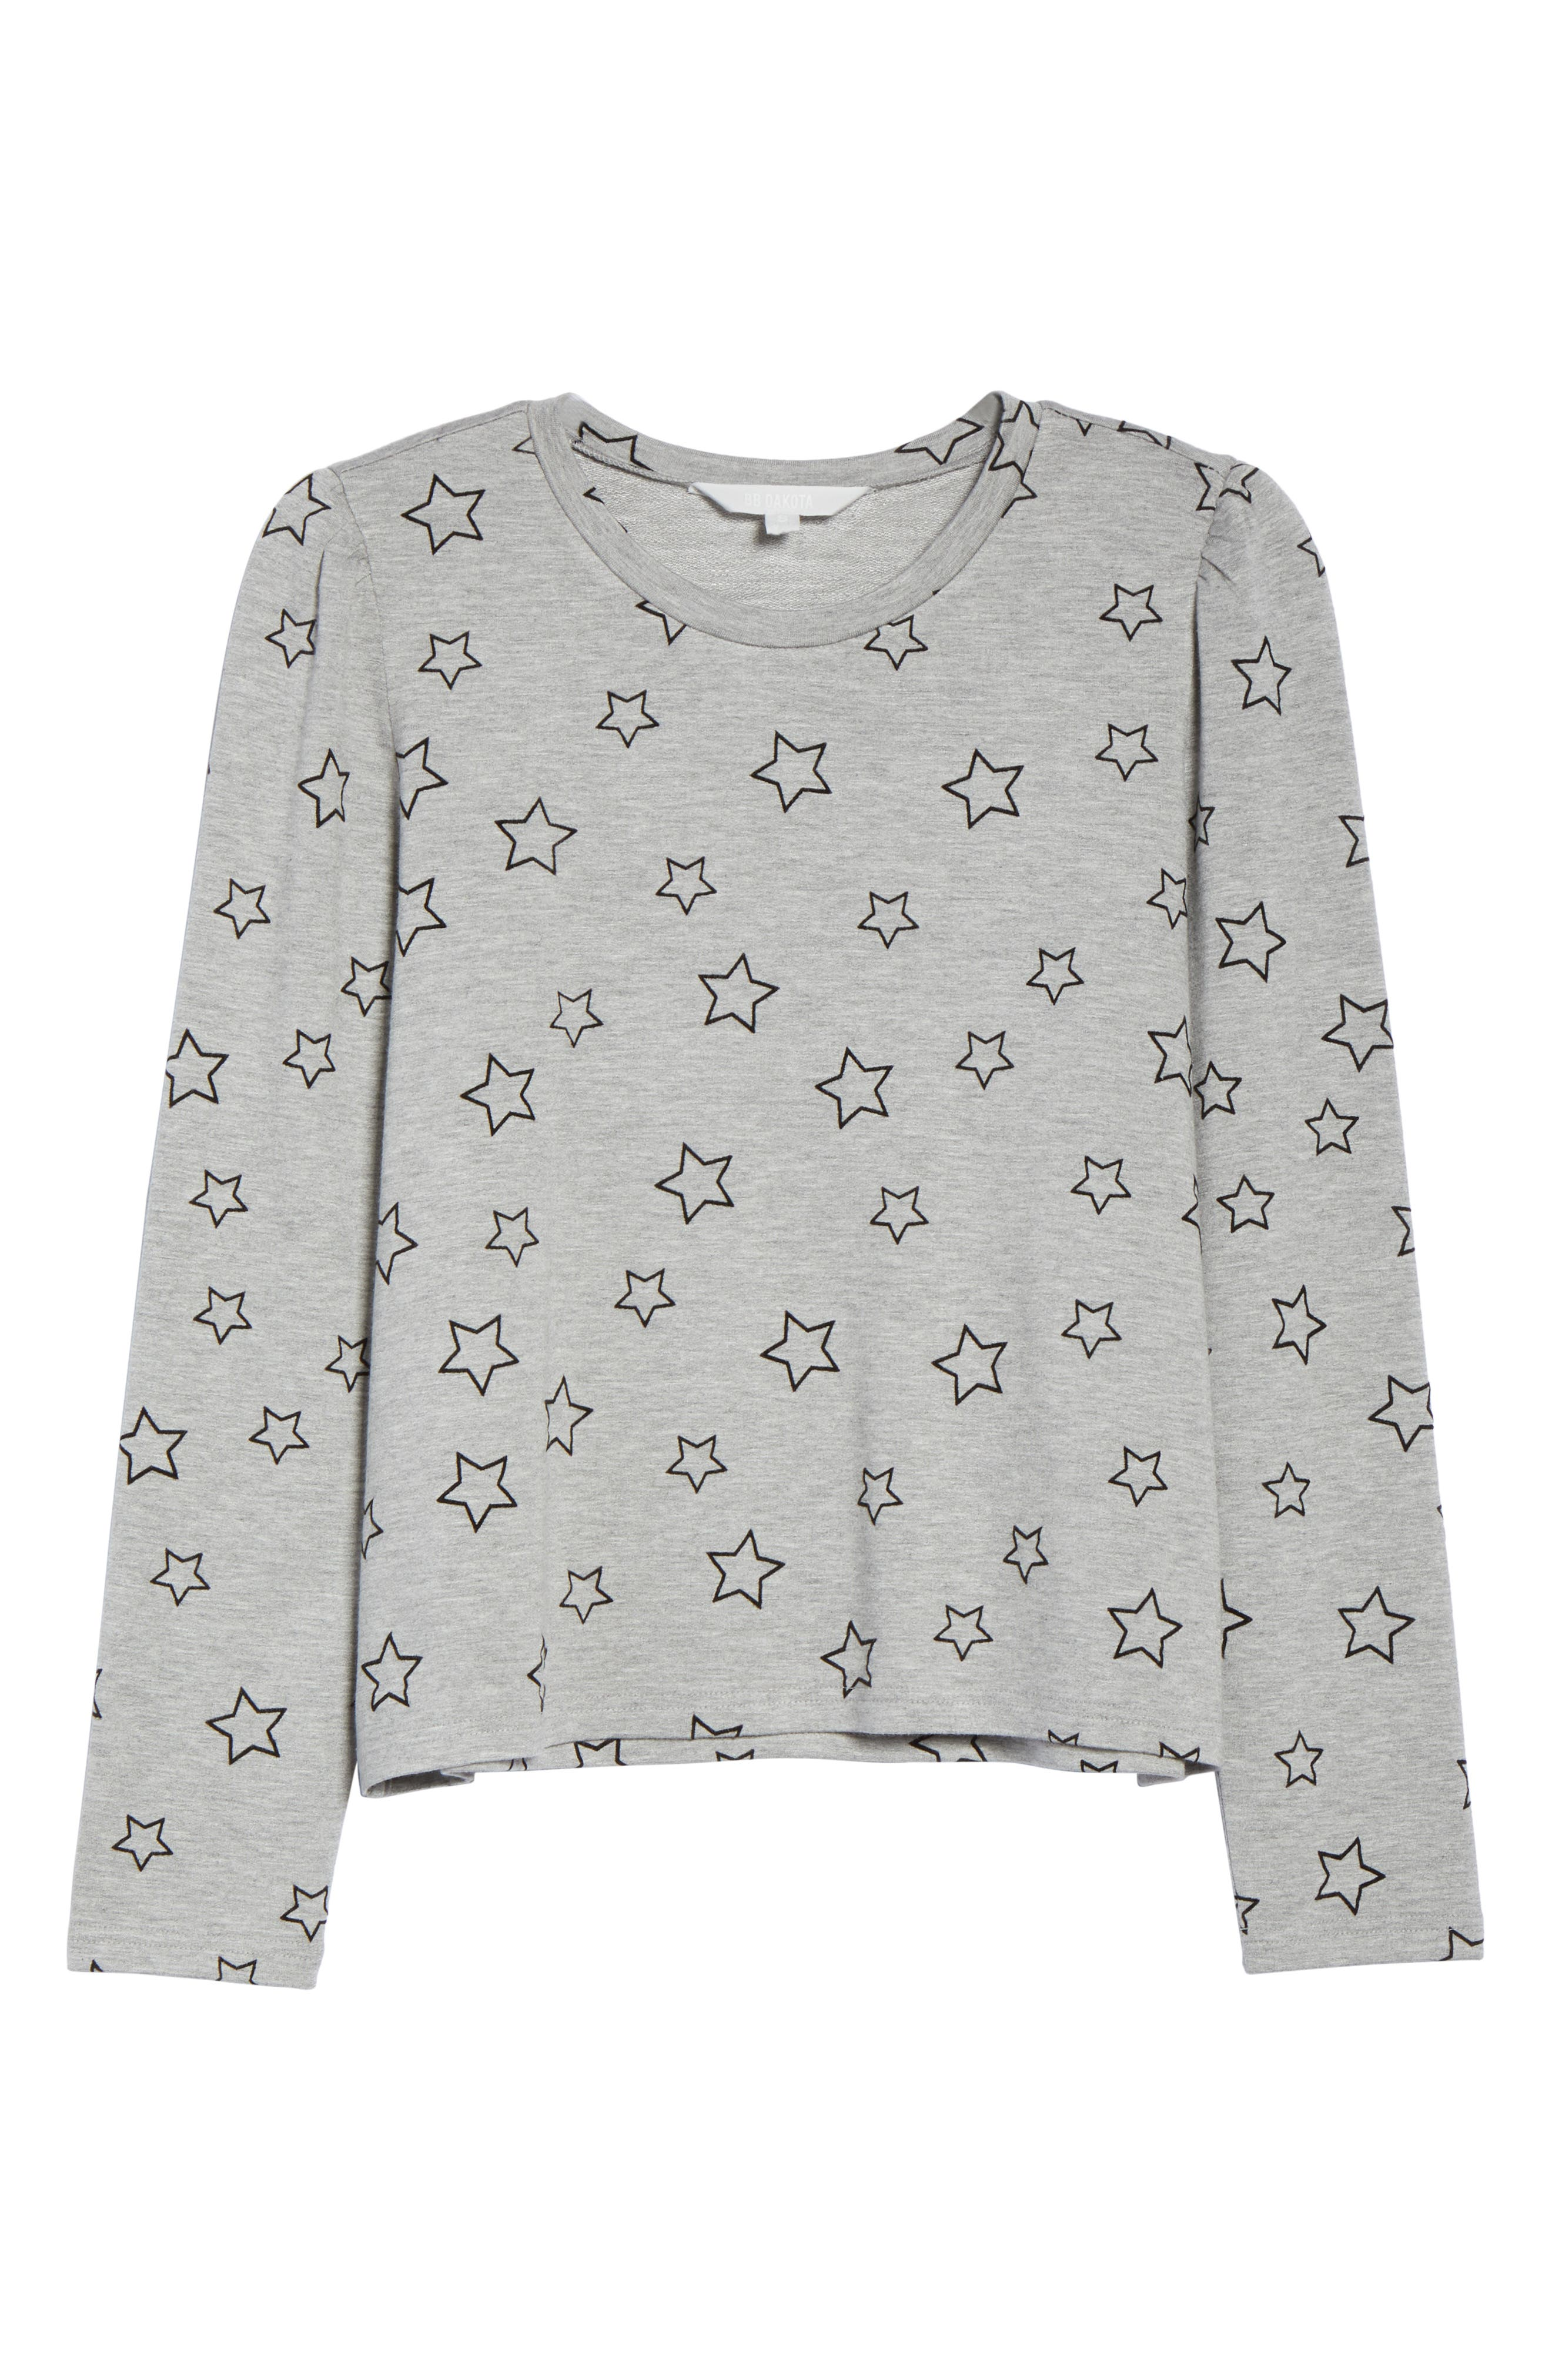 Seeing Stars Top,                             Alternate thumbnail 6, color,                             HEATHER GREY